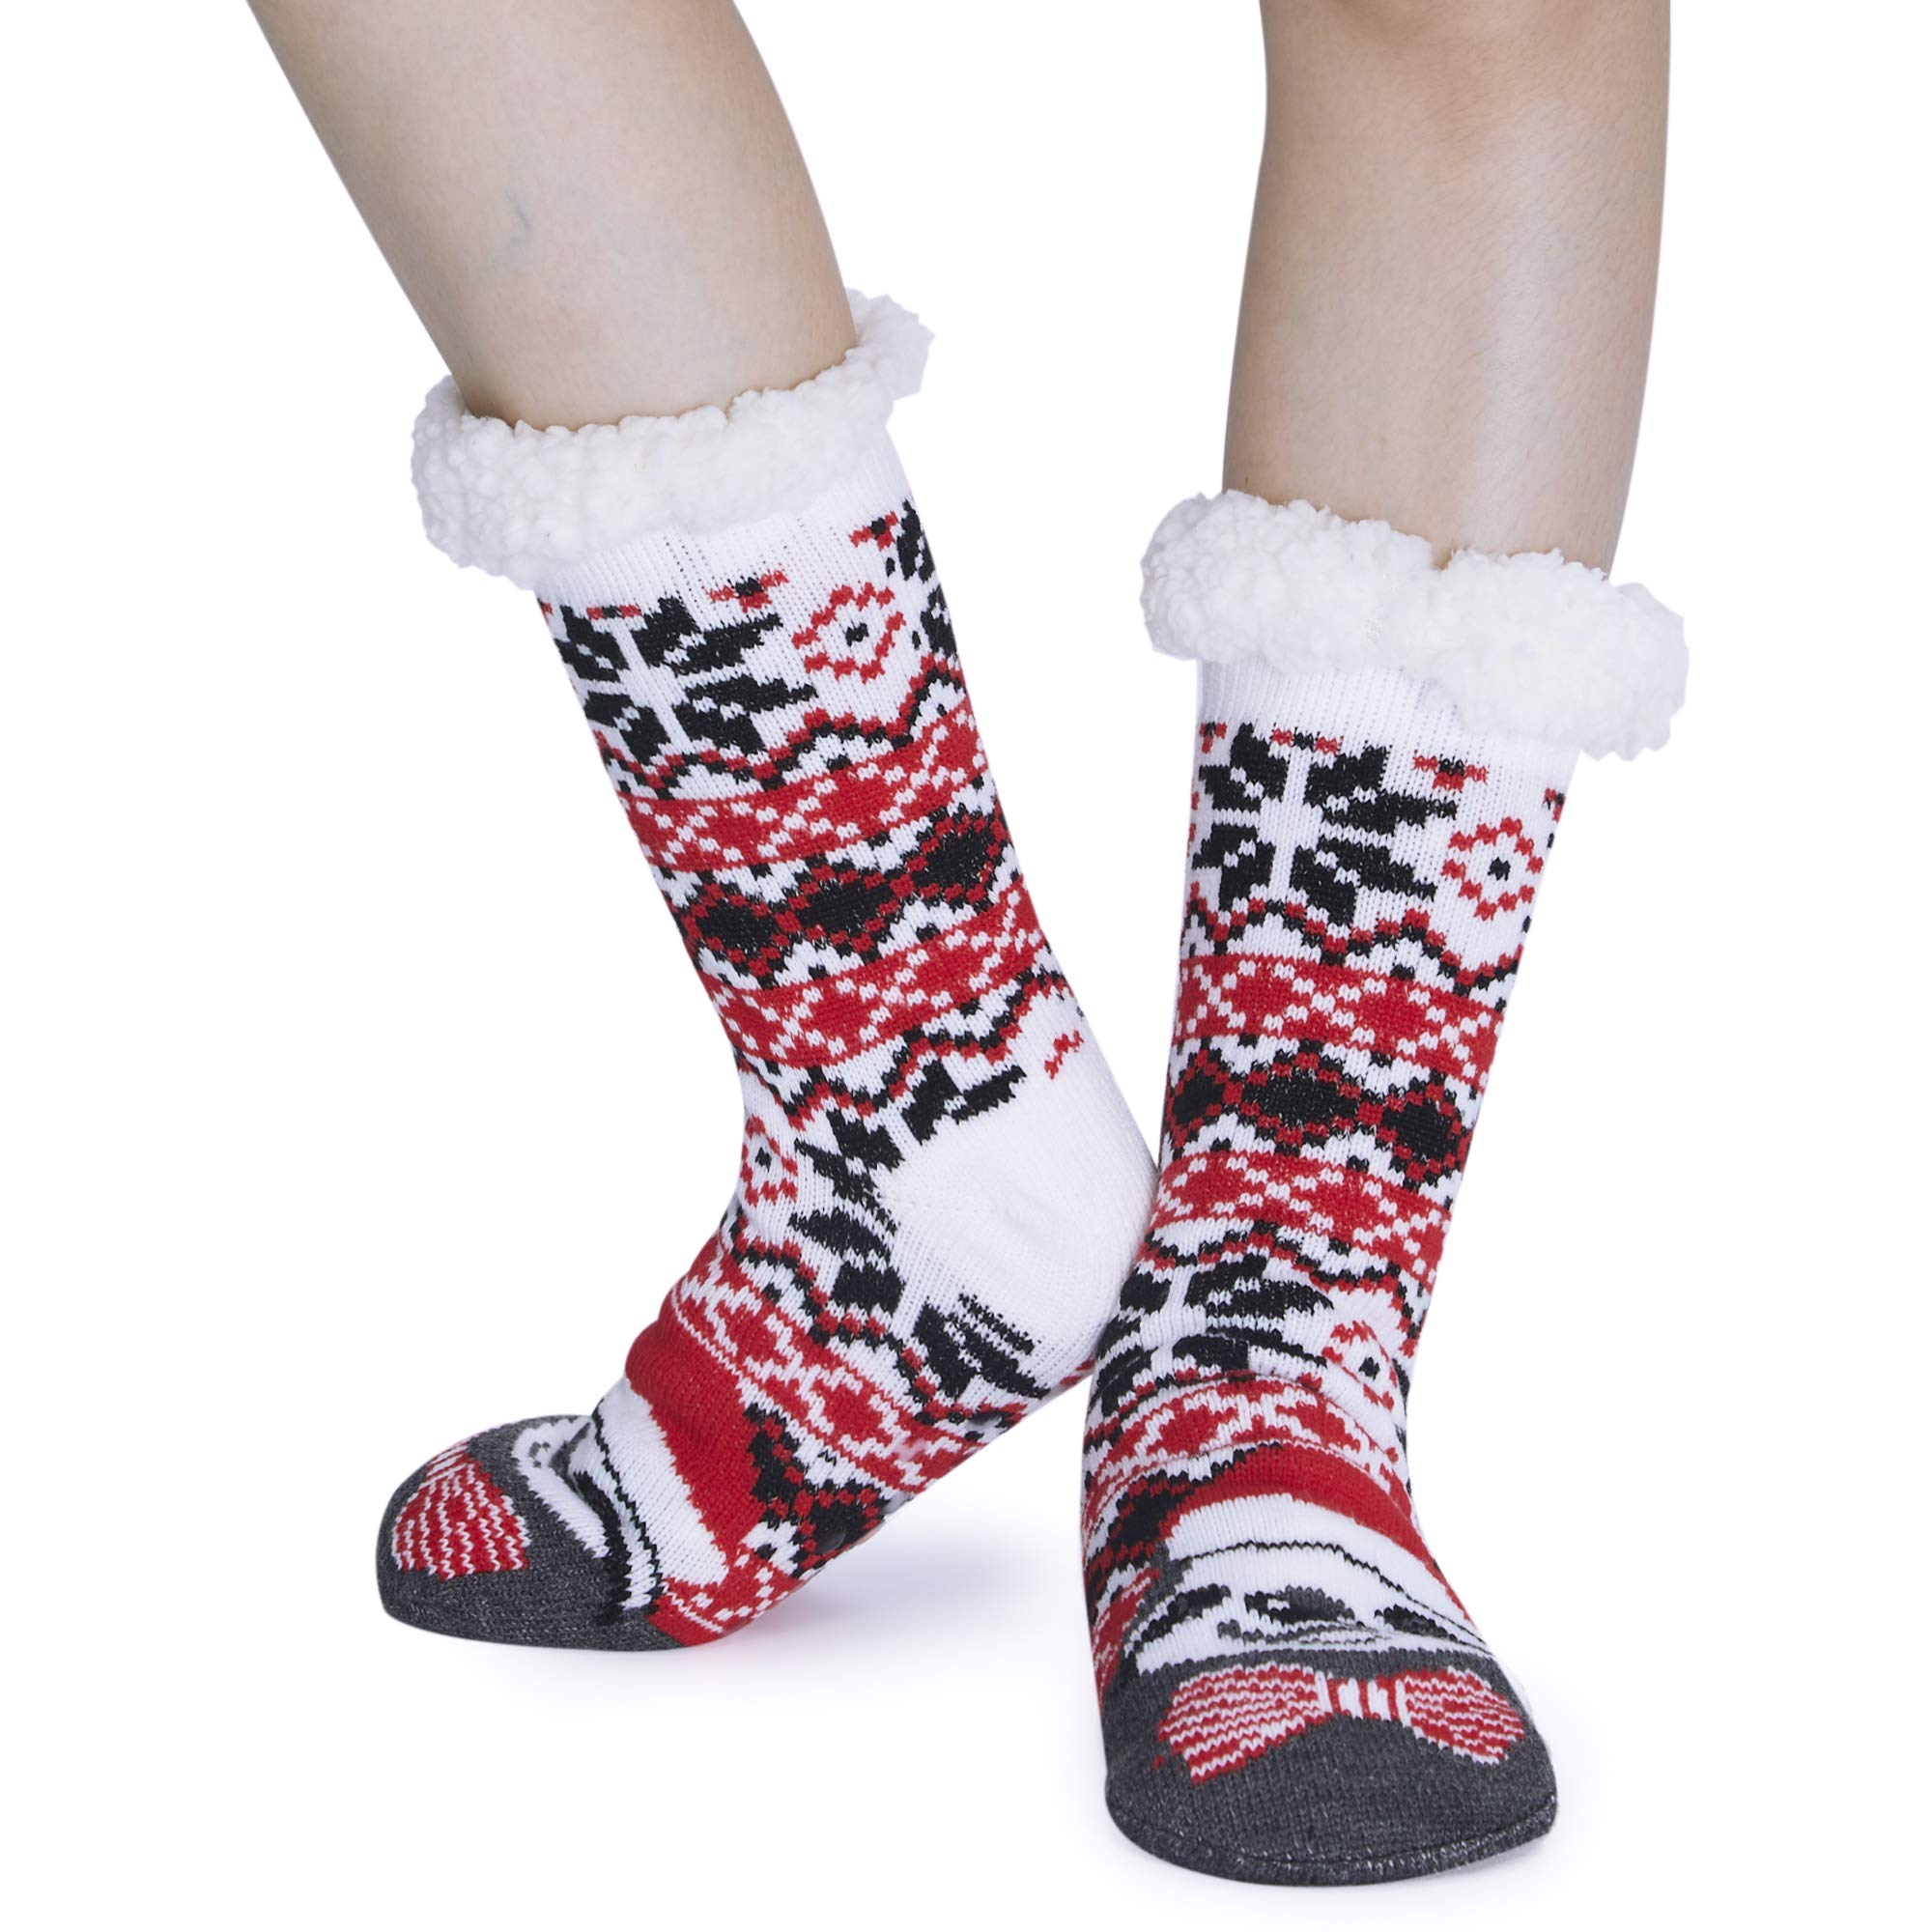 Raisevern Xmas slipper socks